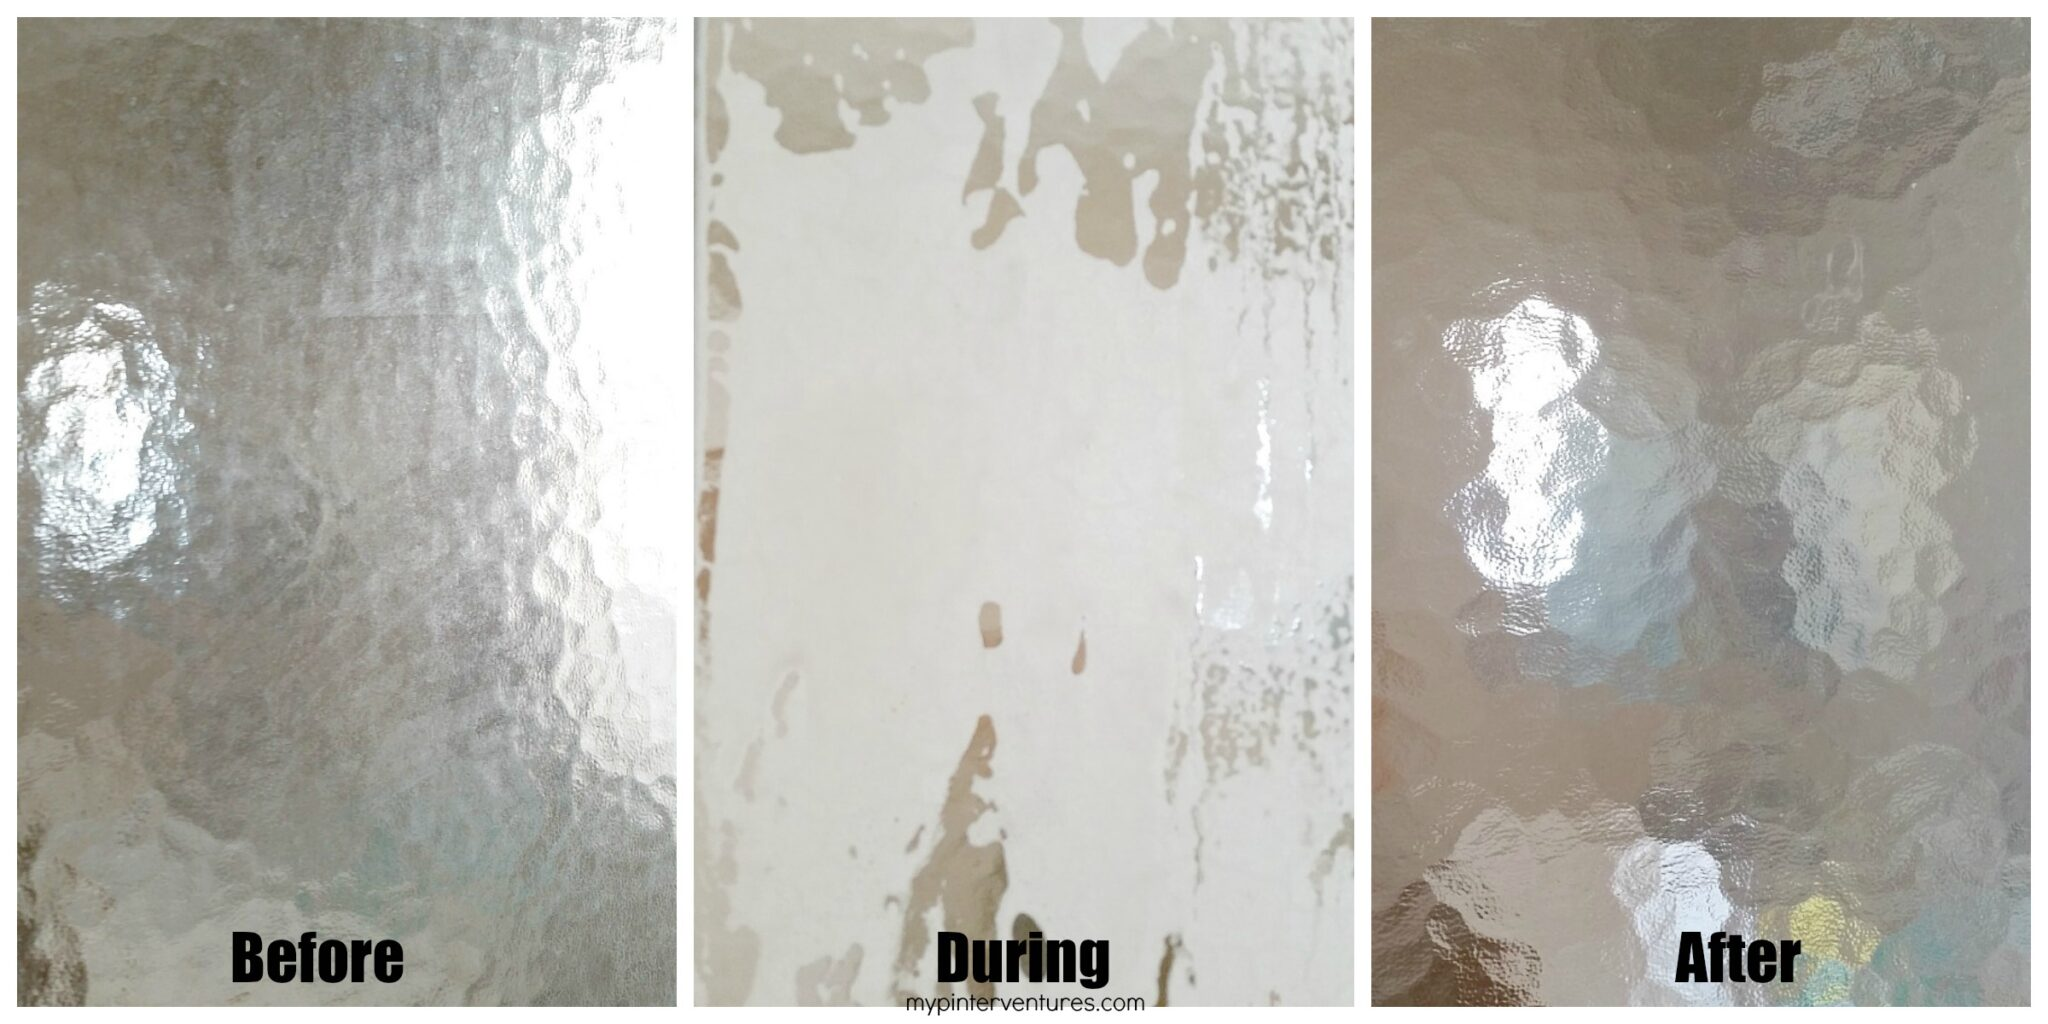 Glass Shower Door Before and After